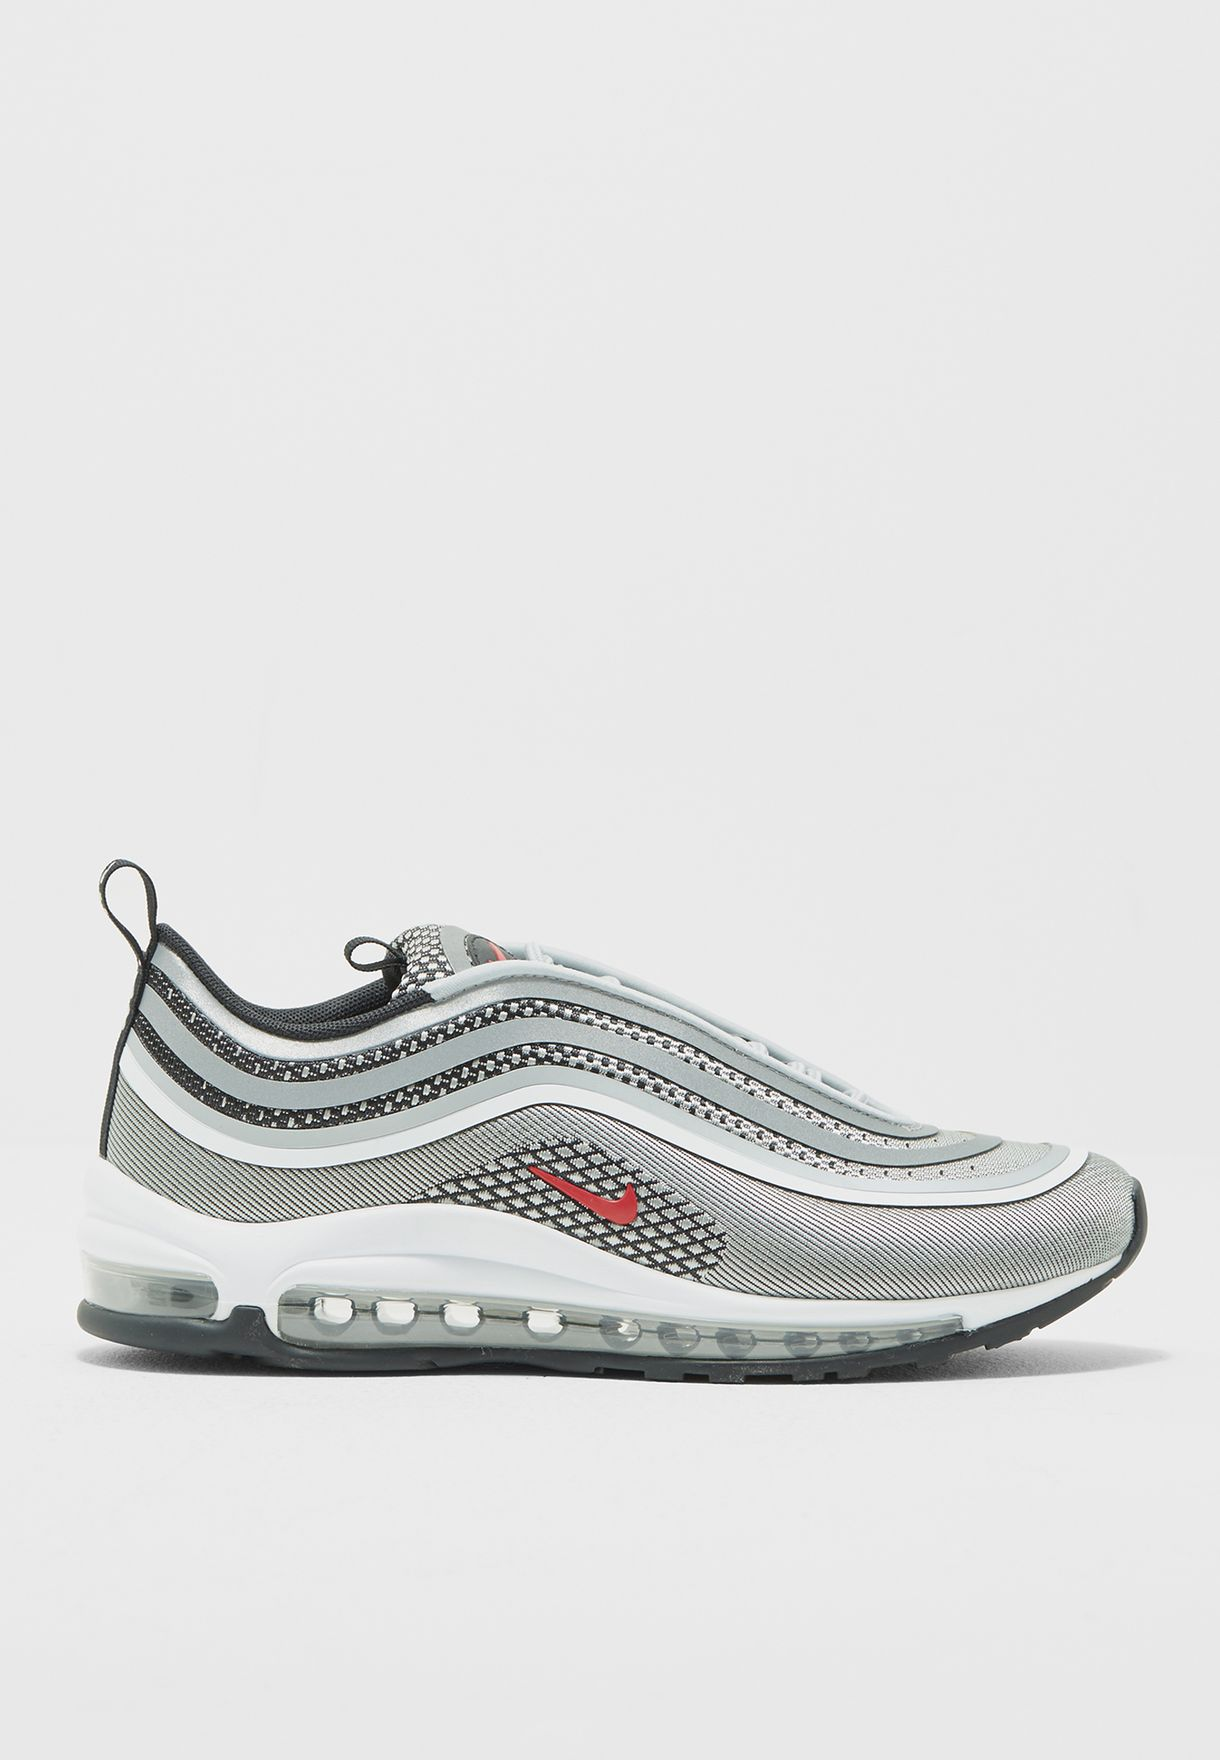 Shop Nike multicolor Air Max 97 Ul   39 17 917704-002 for Women in ... 28a4923ff82